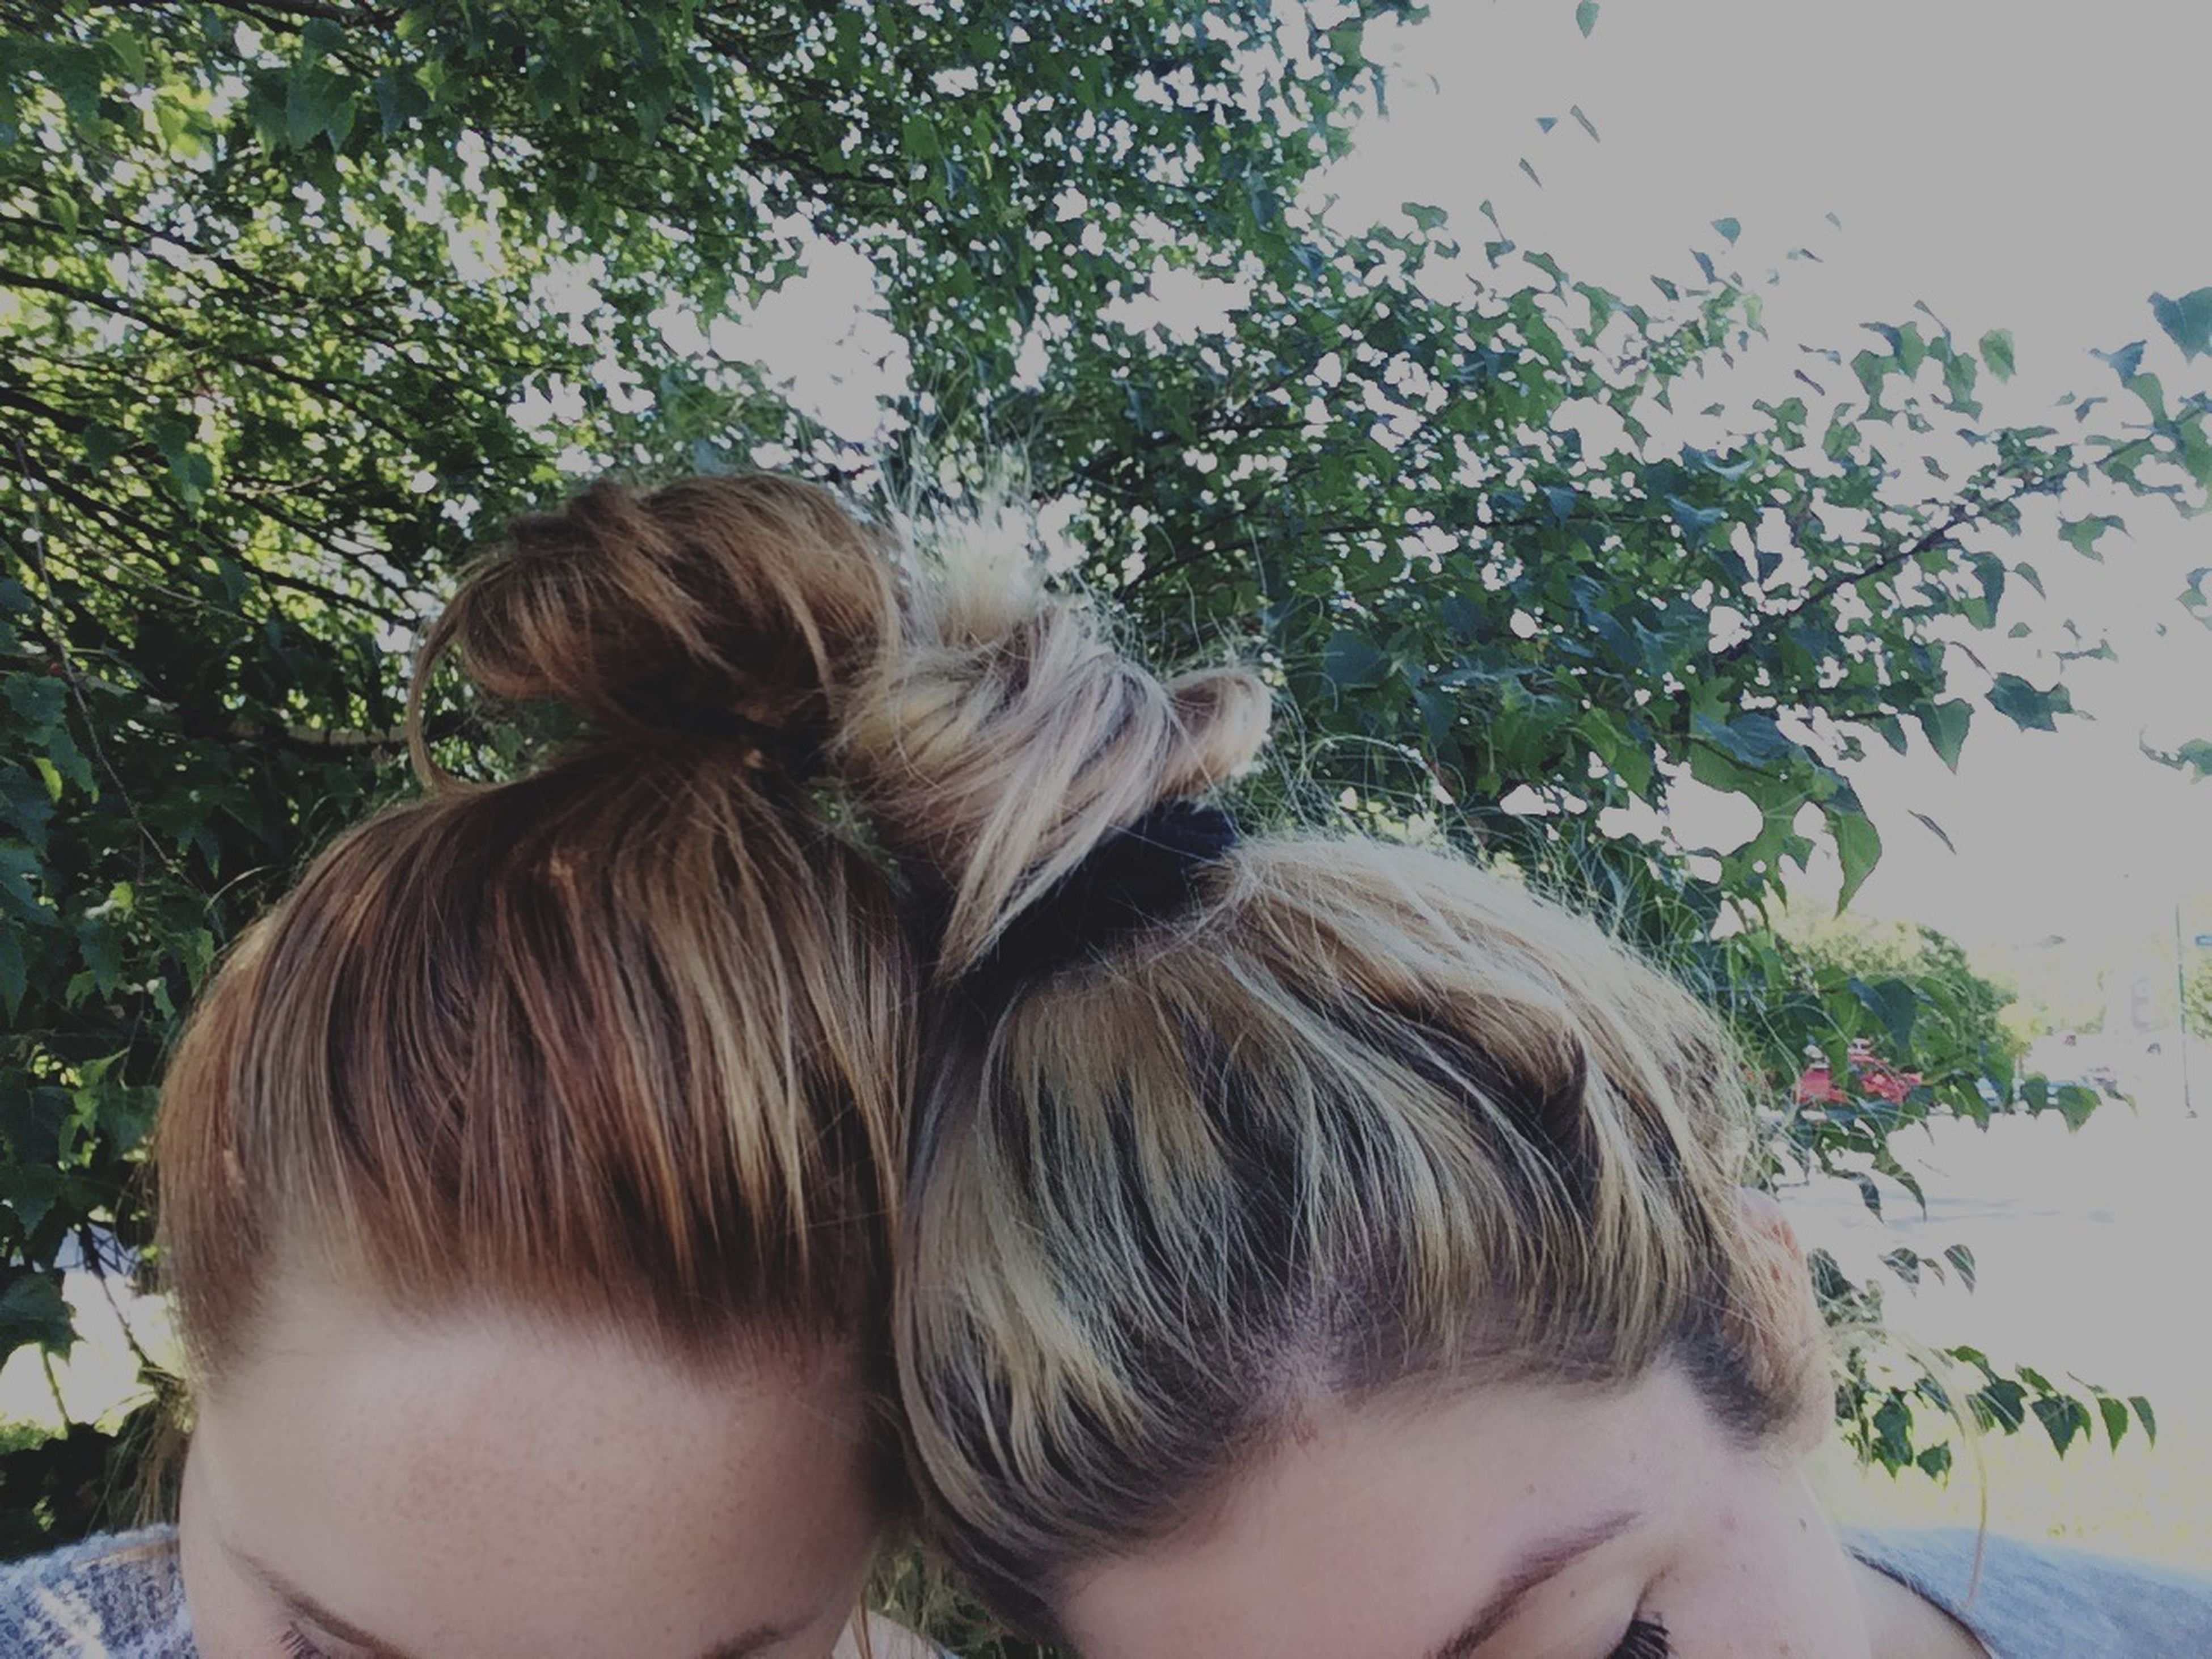 lifestyles, headshot, leisure activity, long hair, childhood, person, girls, elementary age, young women, brown hair, blond hair, rear view, casual clothing, waist up, tree, bonding